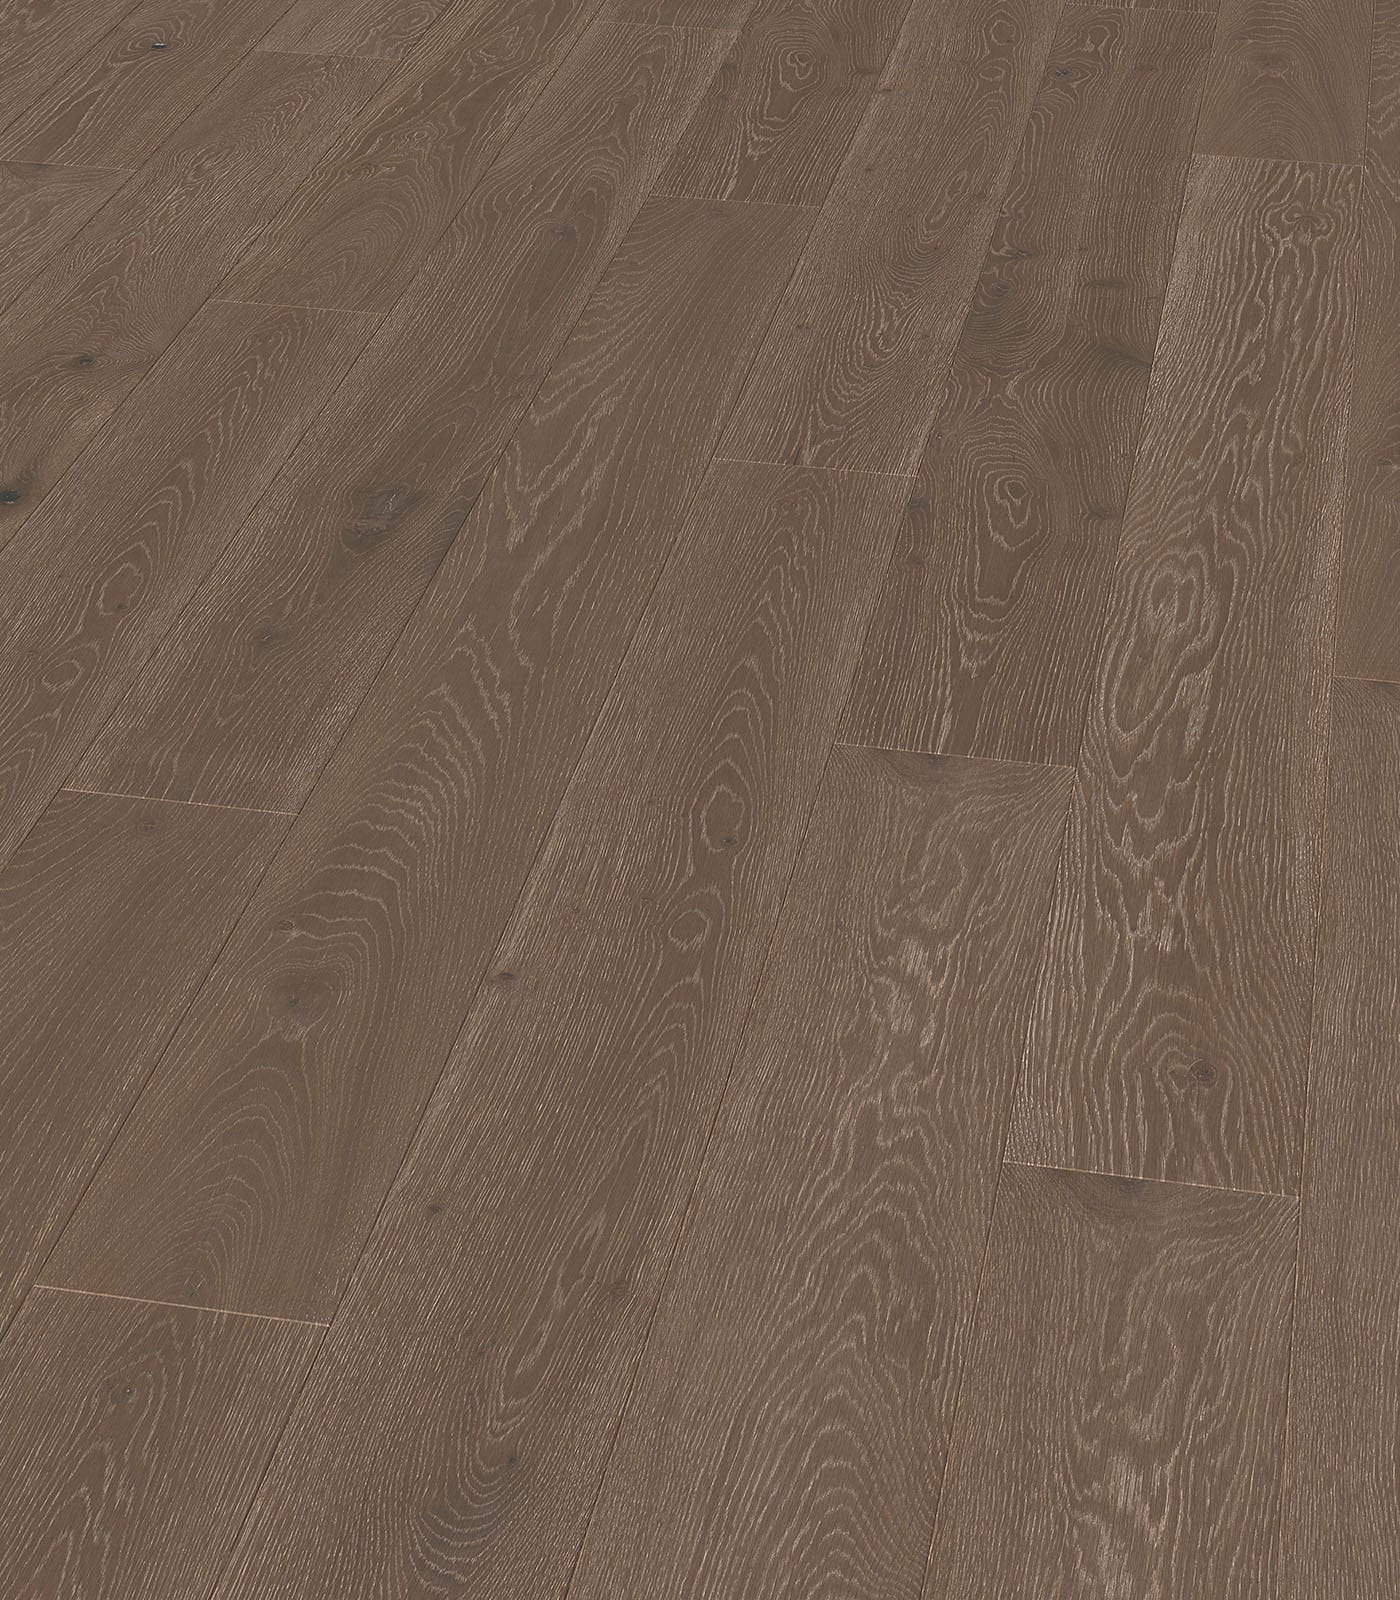 Havana-Colors Collection-European oak floors-angle